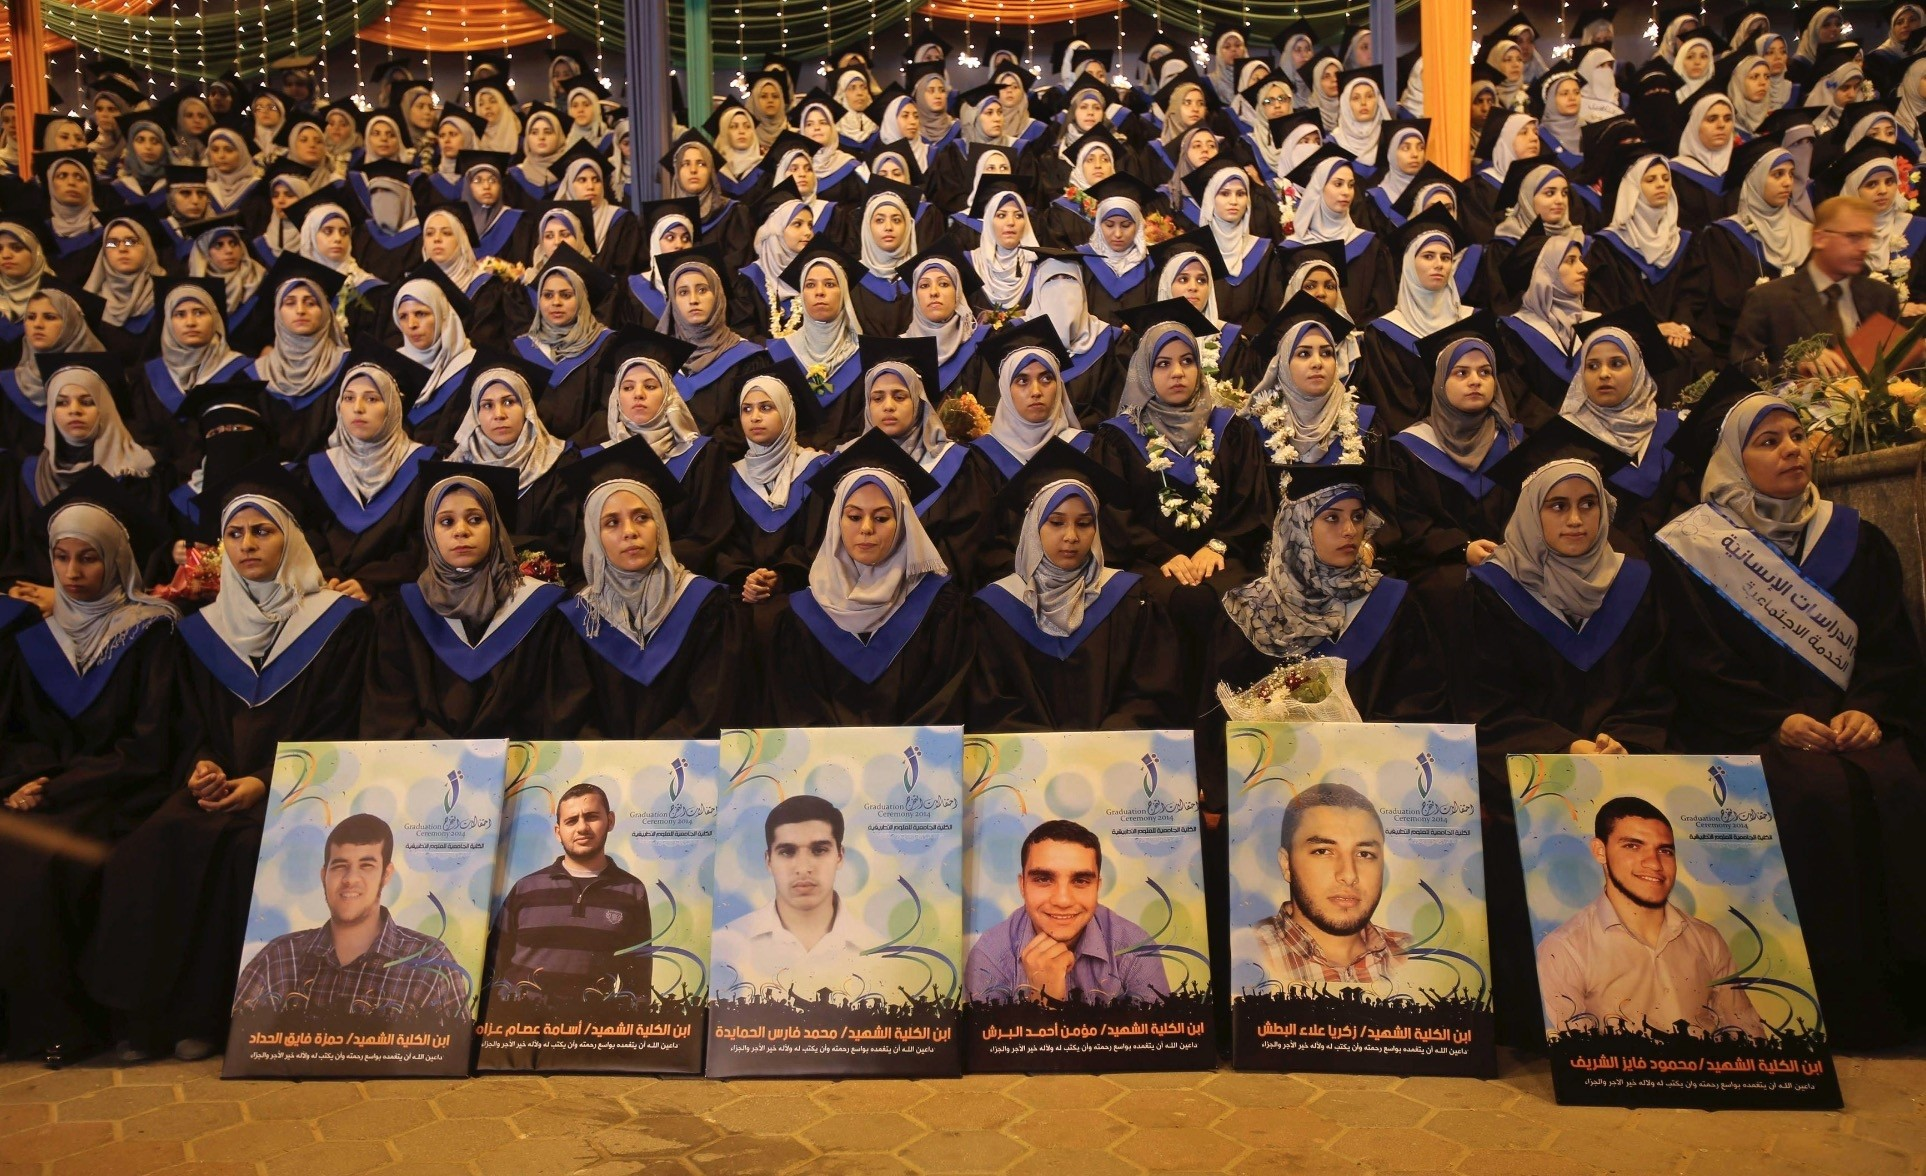 Palestinian graduates attend their graduation ceremony as they sit behind posters of the students who were killed by Israeli forces in a seven-week offensive, at the University College of Applied Sciences, Sept. 10, 2014.